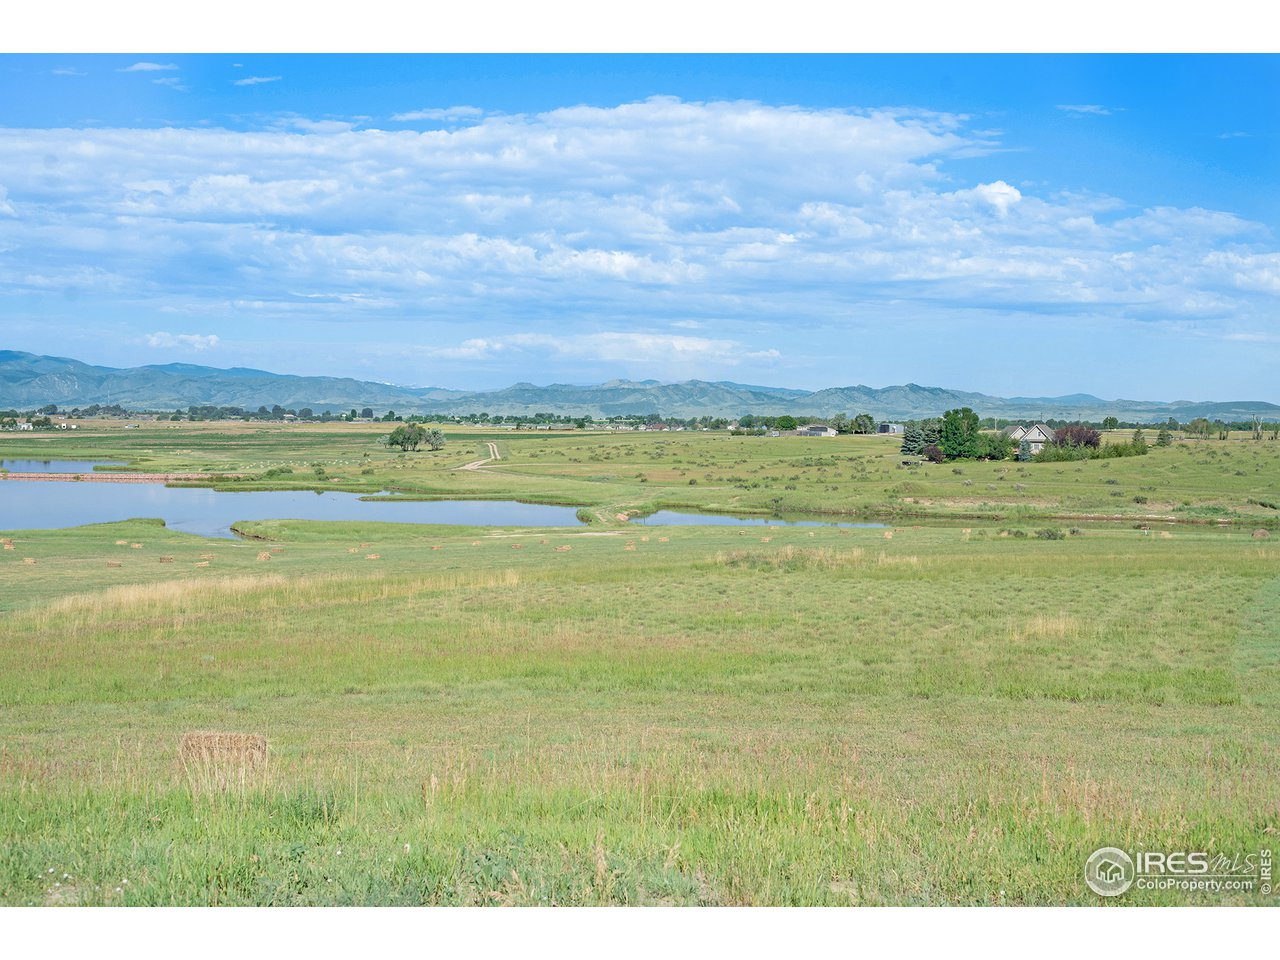 Southern Property Line Boarders 160 Acres of Protected CO State Wildlife Land.